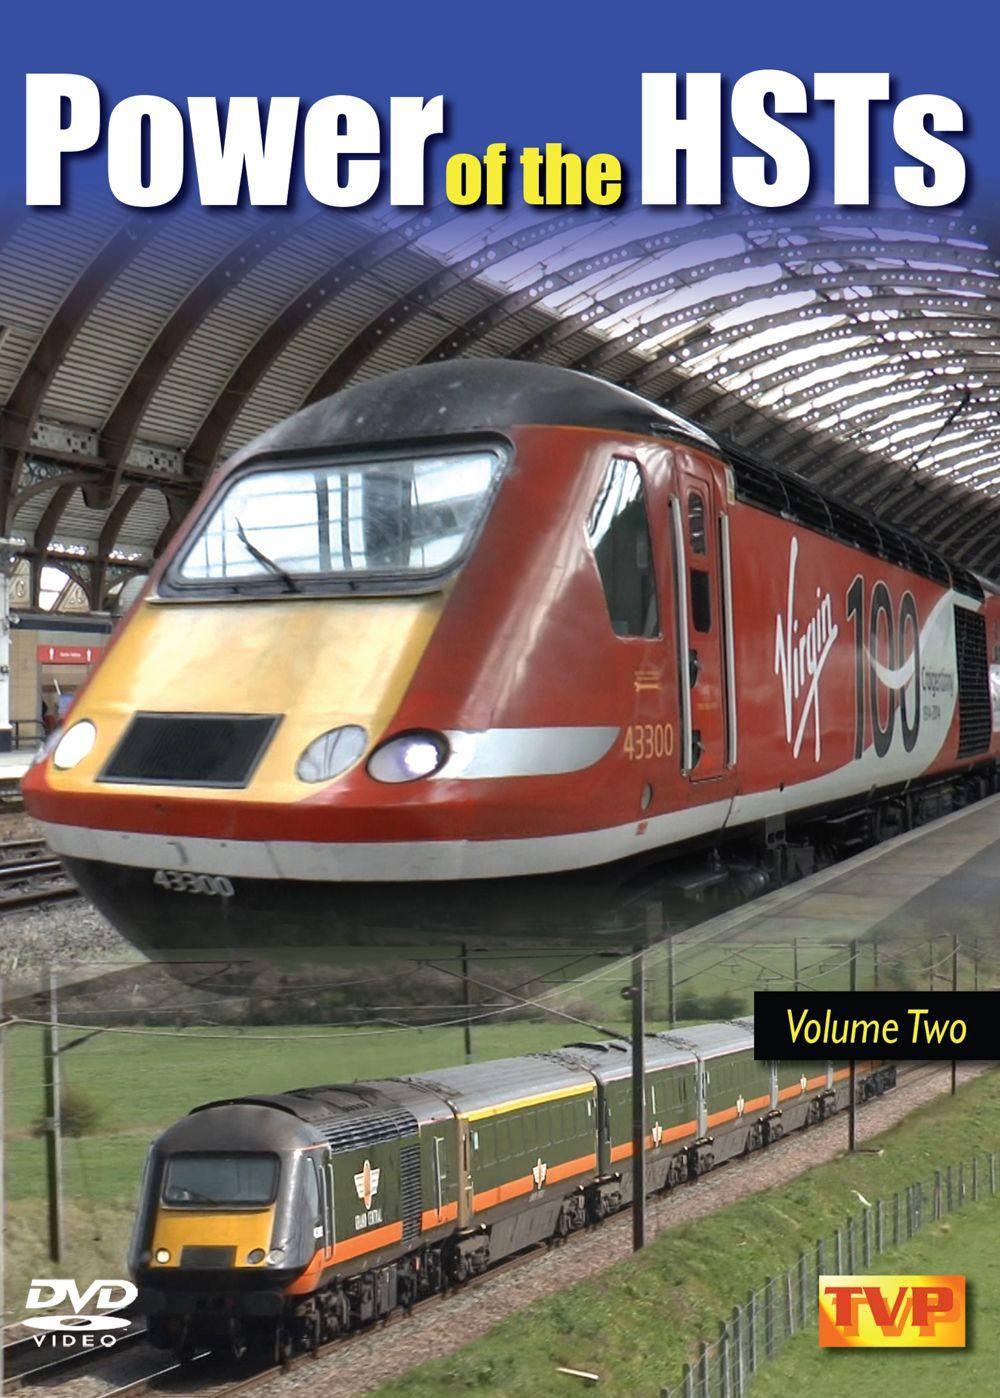 Power of the HSTs - Volume 2